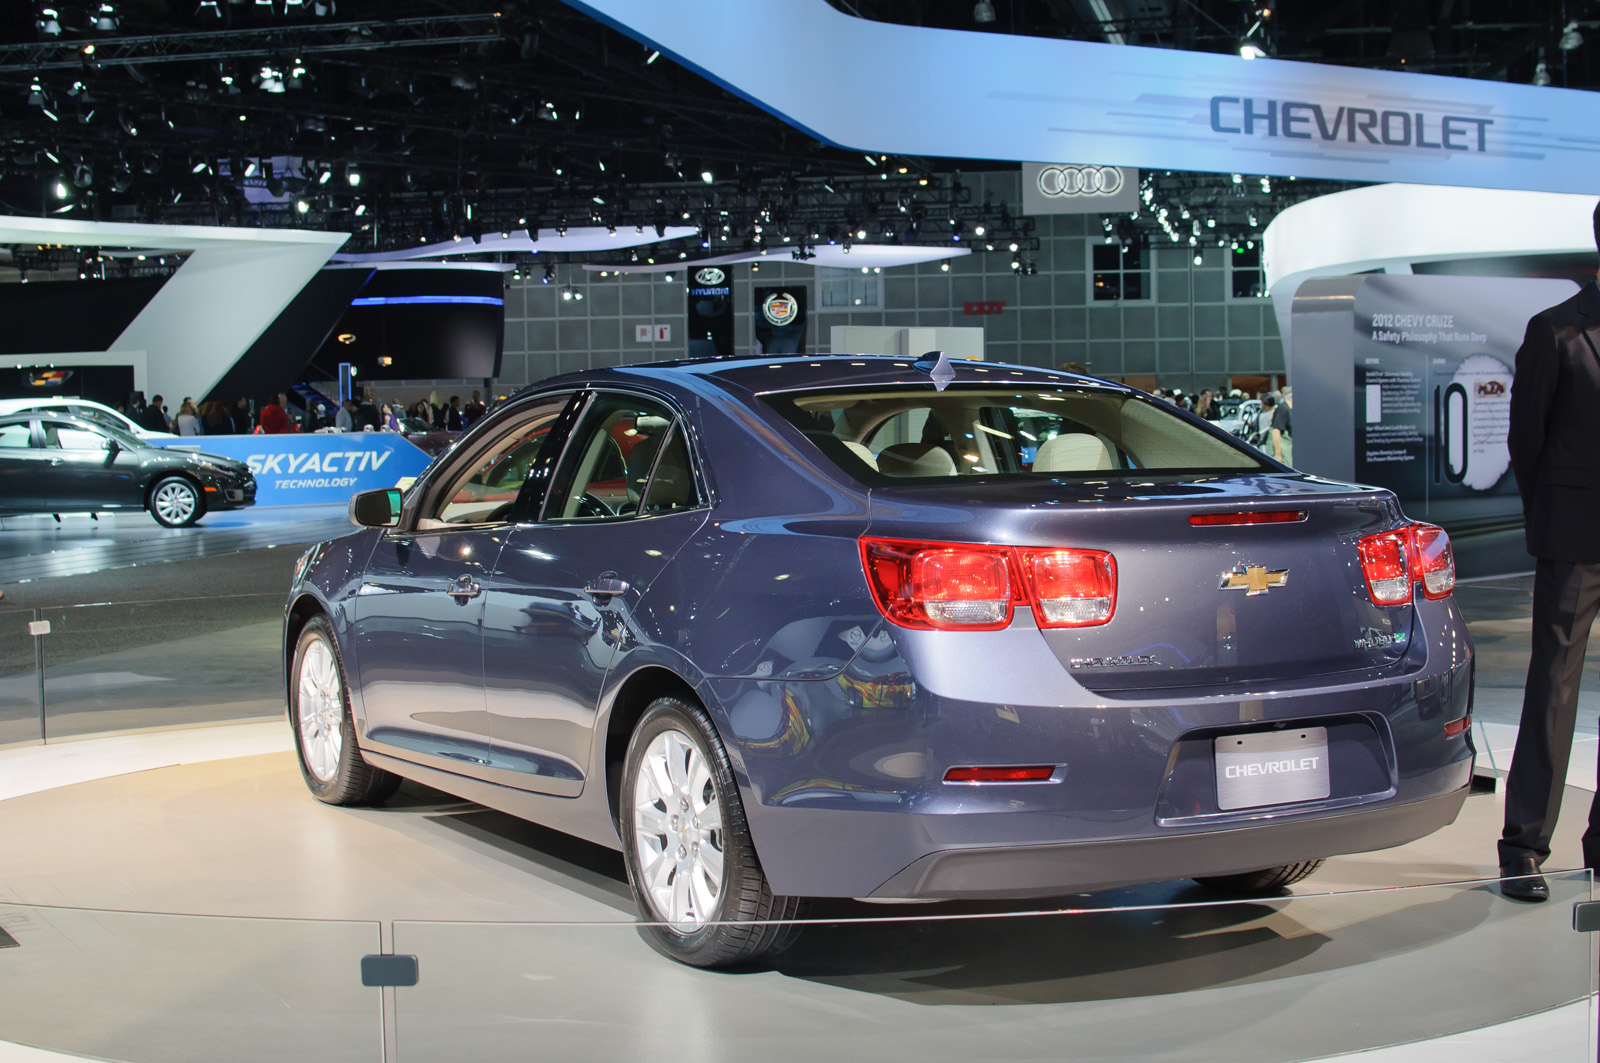 2013 chevrolet malibu ls fleet sedan 2 5l auto. Black Bedroom Furniture Sets. Home Design Ideas